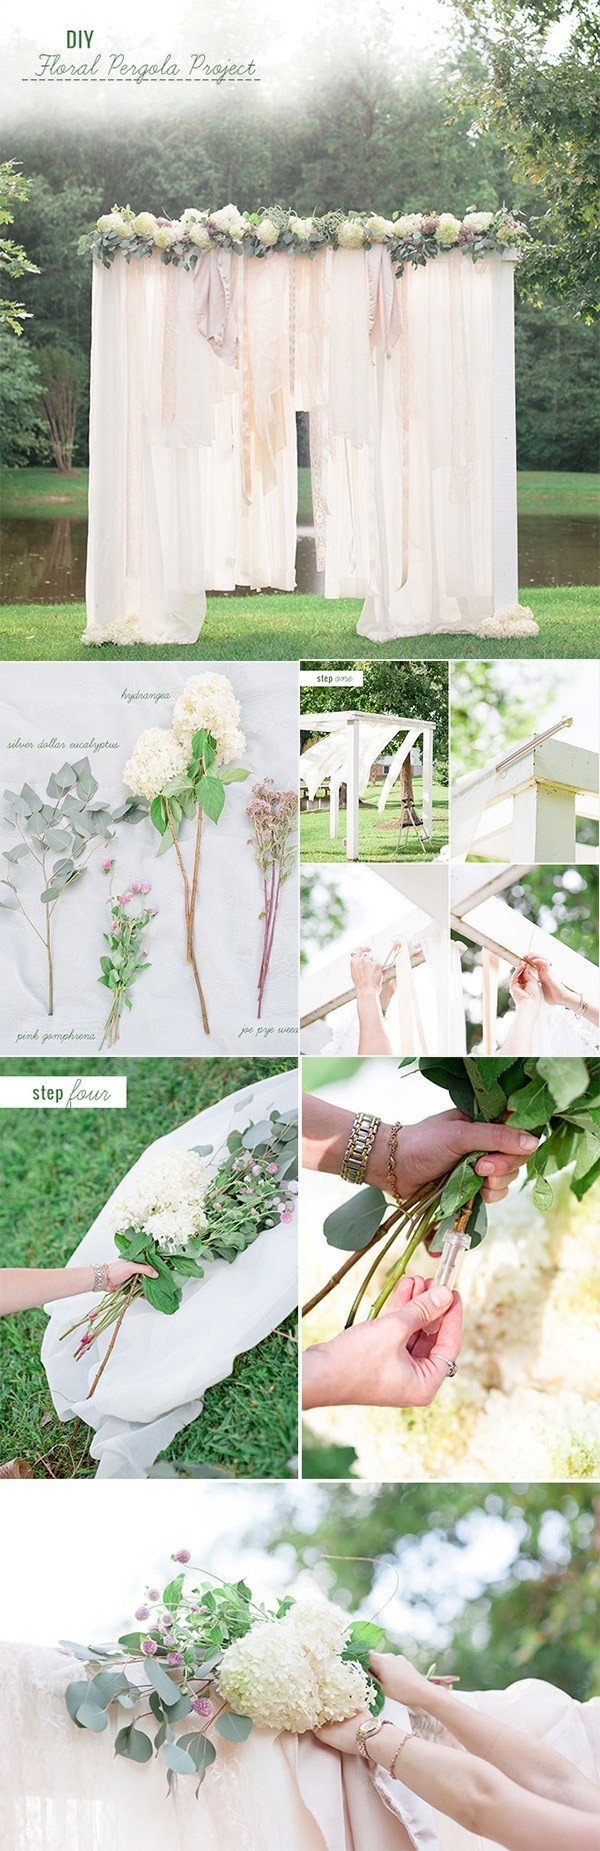 Best ideas about DIY Wedding Ideas On A Budget . Save or Pin 10 Perfect DIY Wedding Ideas on a Bud Oh Best Day Ever Now.